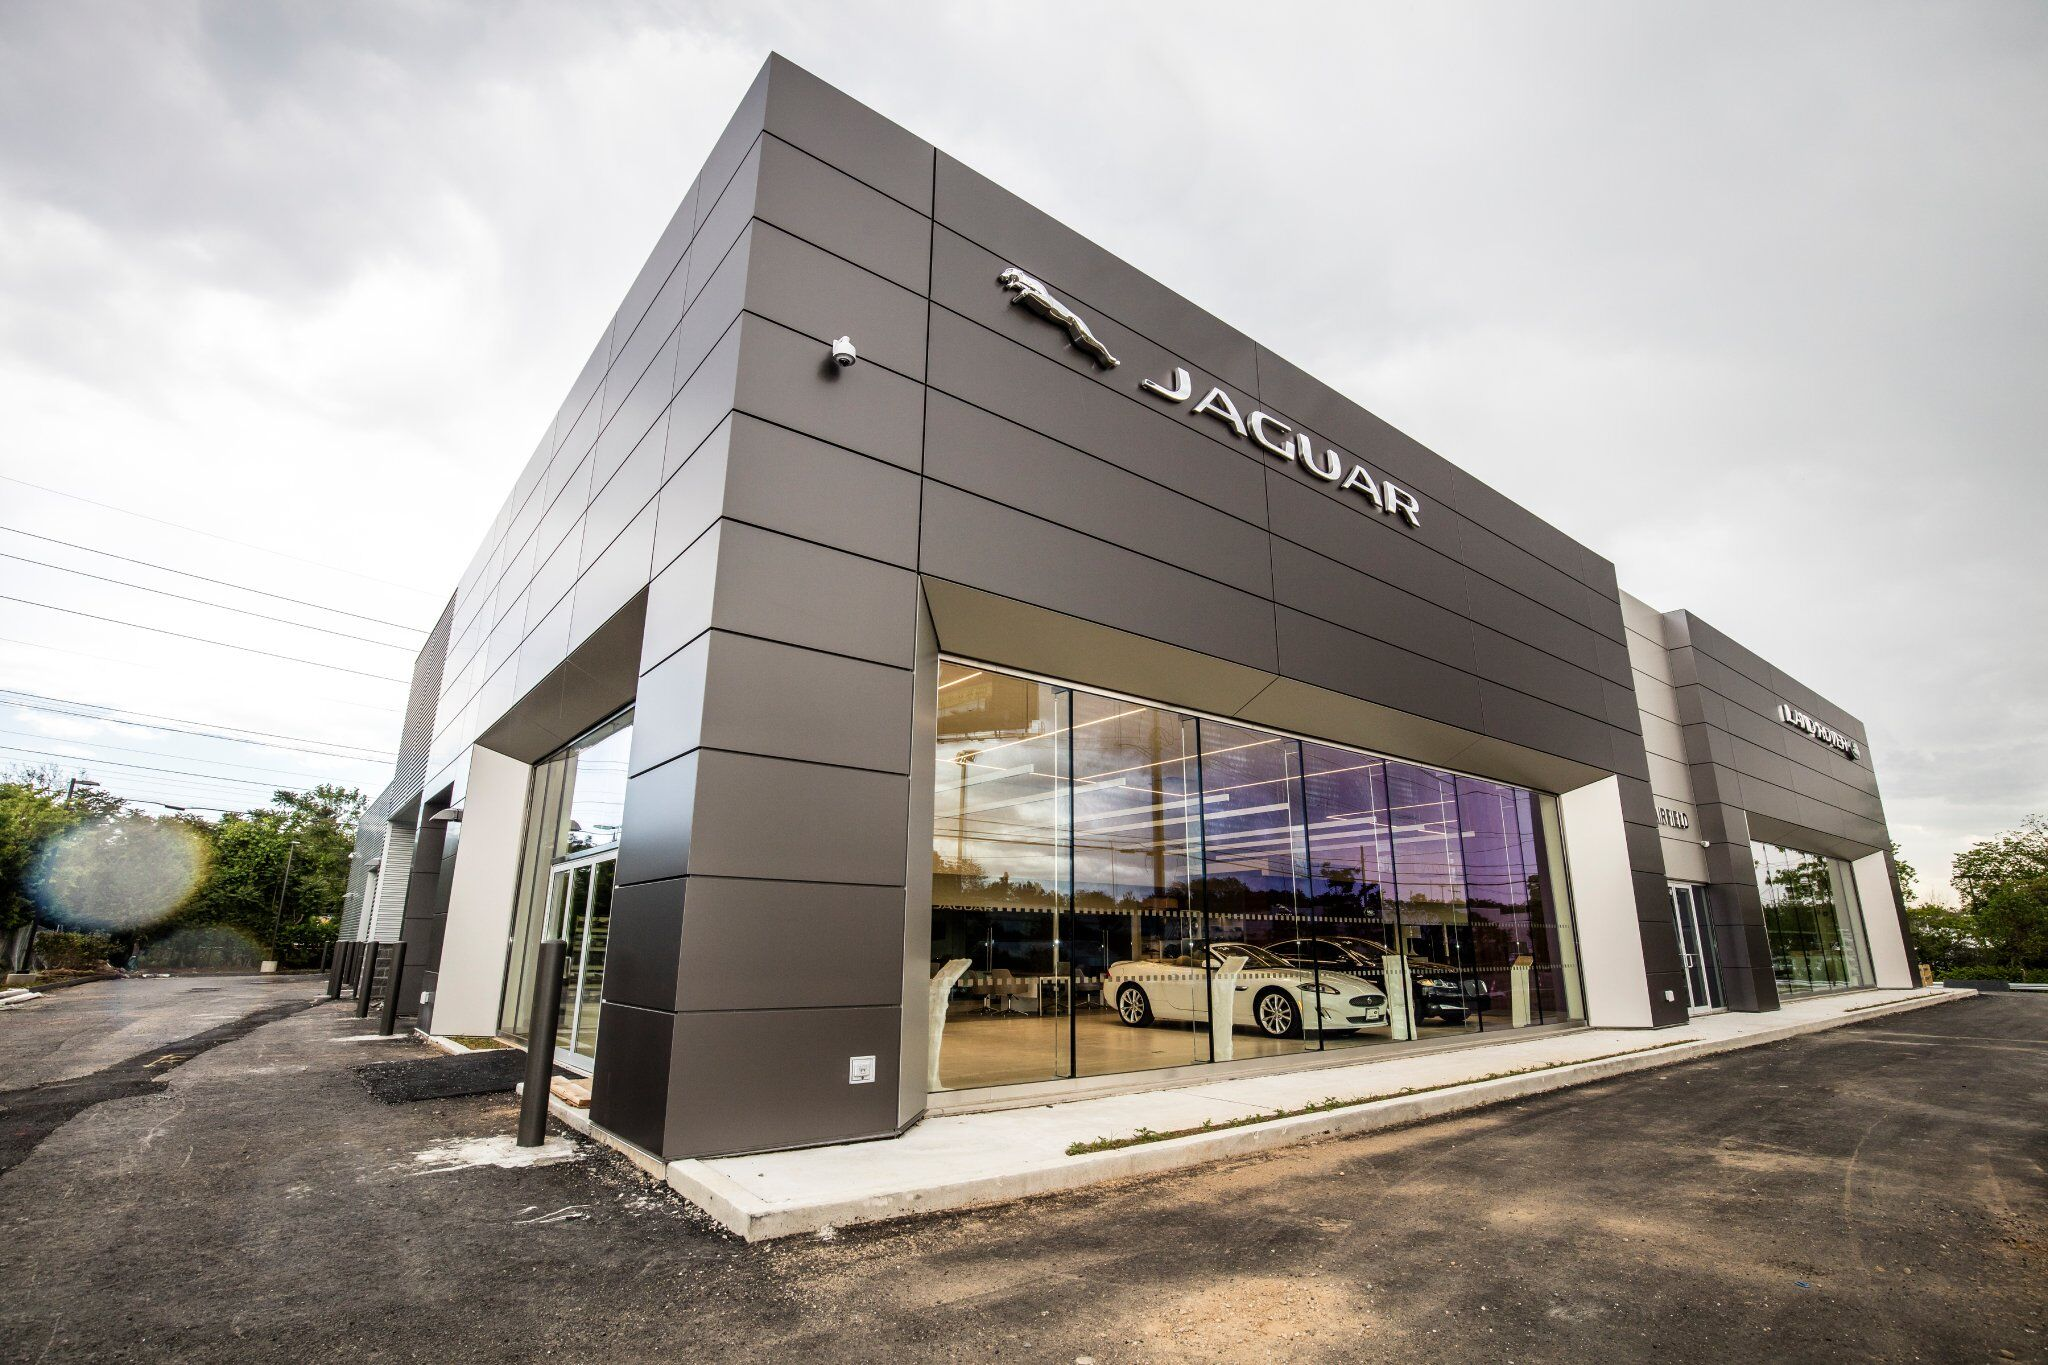 detalles proyectos rover project land jaguar car onok en dealers